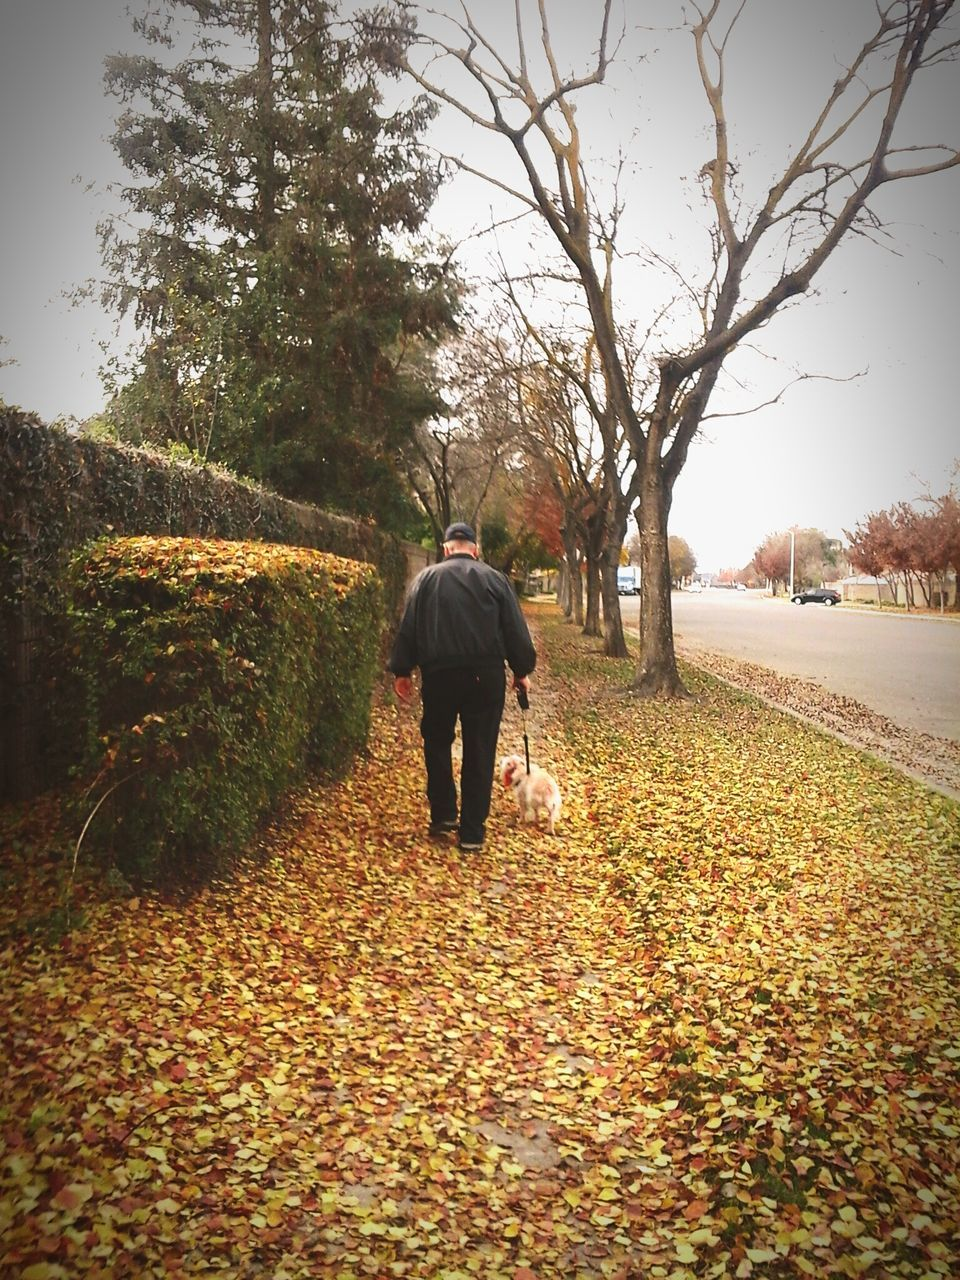 autumn, tree, change, nature, leaf, walking, rear view, landscape, beauty in nature, outdoors, forest, full length, men, day, sky, one person, people